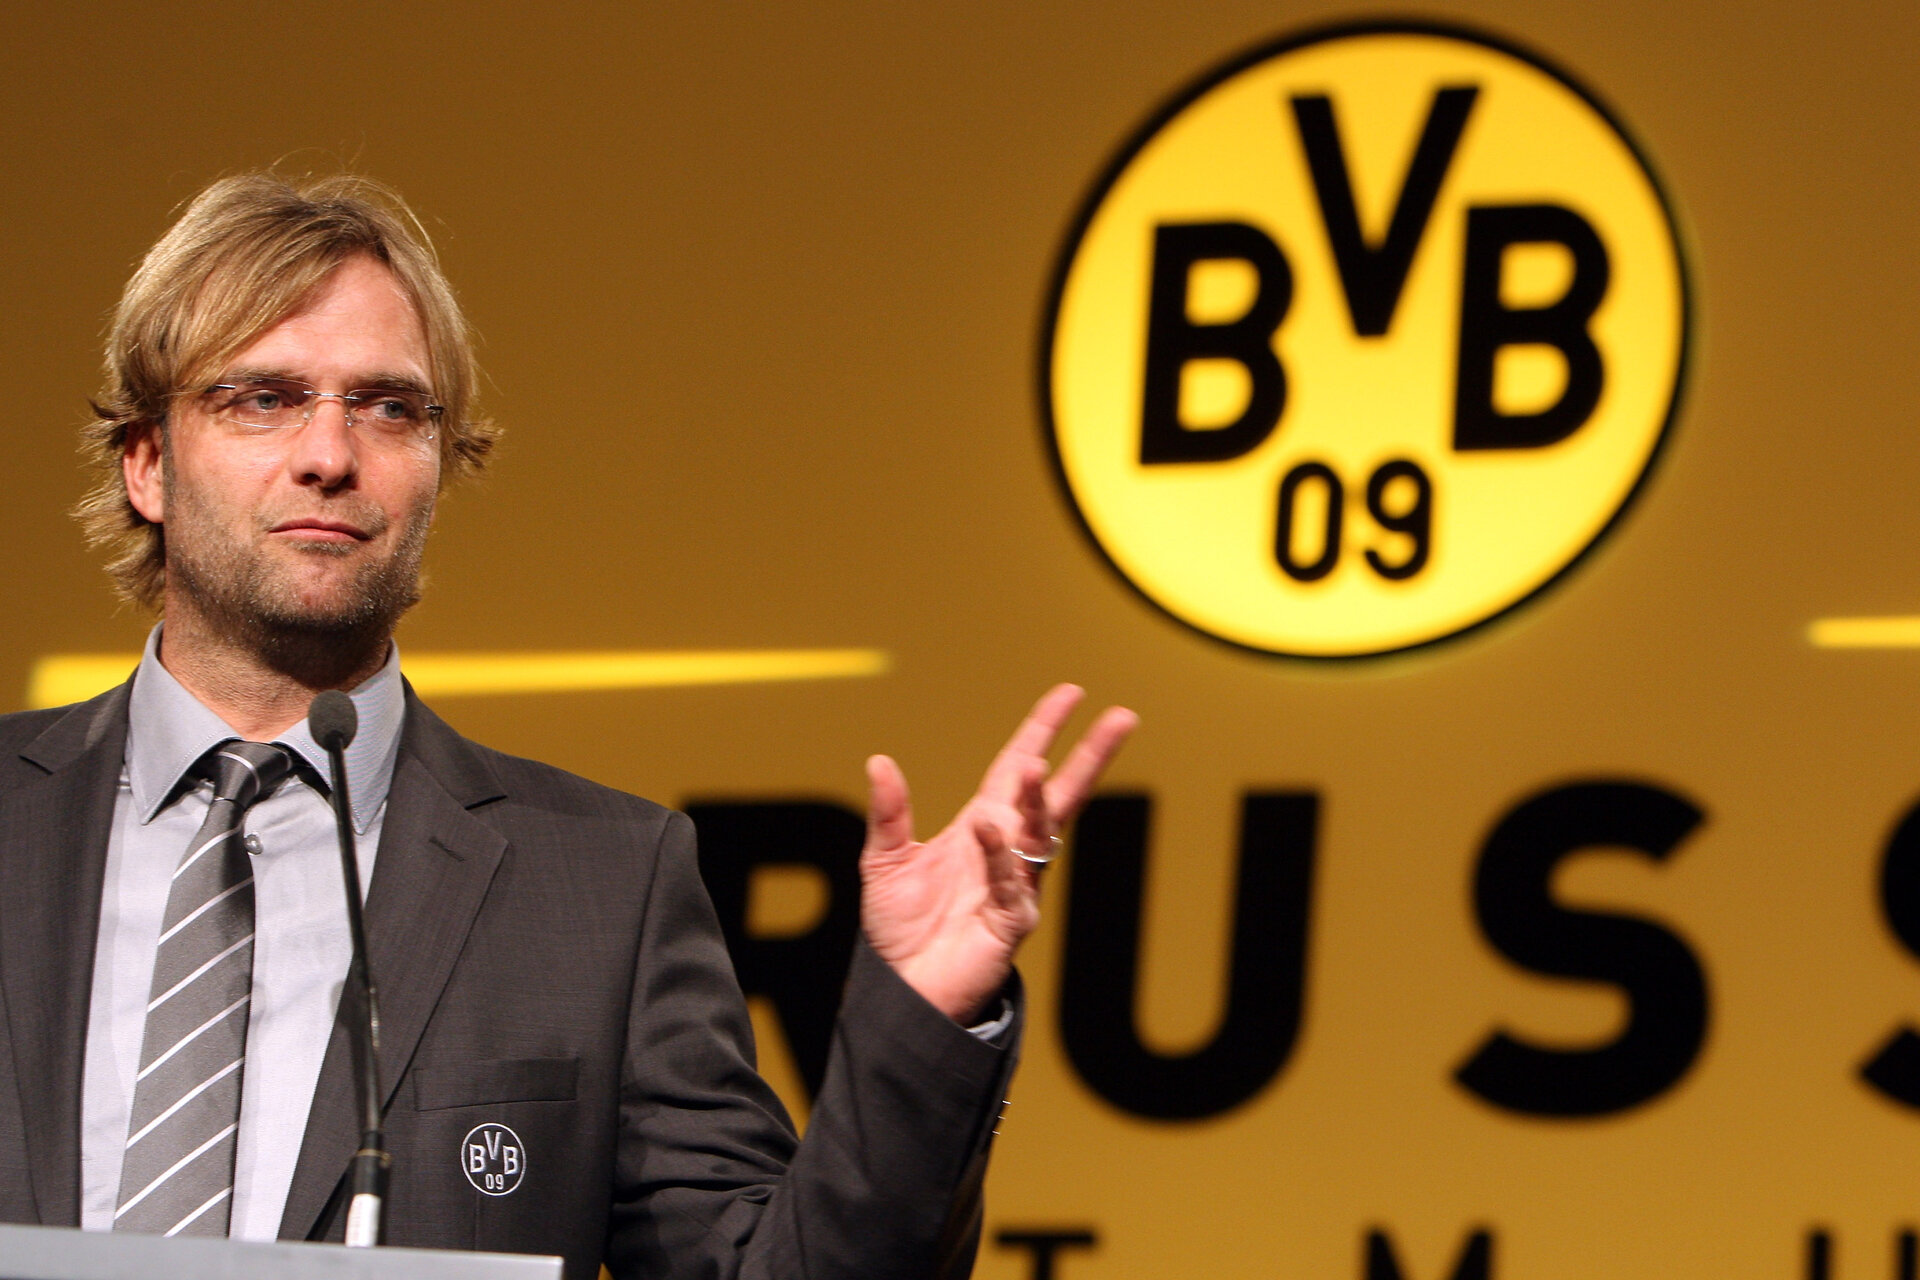 DORTMUND, GERMANY - NOVEMBER 23:  Head coach Juergen Klopp speaks to the audience during the Borussia Dortmund General Annual Meeting at the Westfalenhalle on November 23, 2008 in Dortmund, Germany  (Photo by Patrik Stollarz/Bongarts/Getty Images)